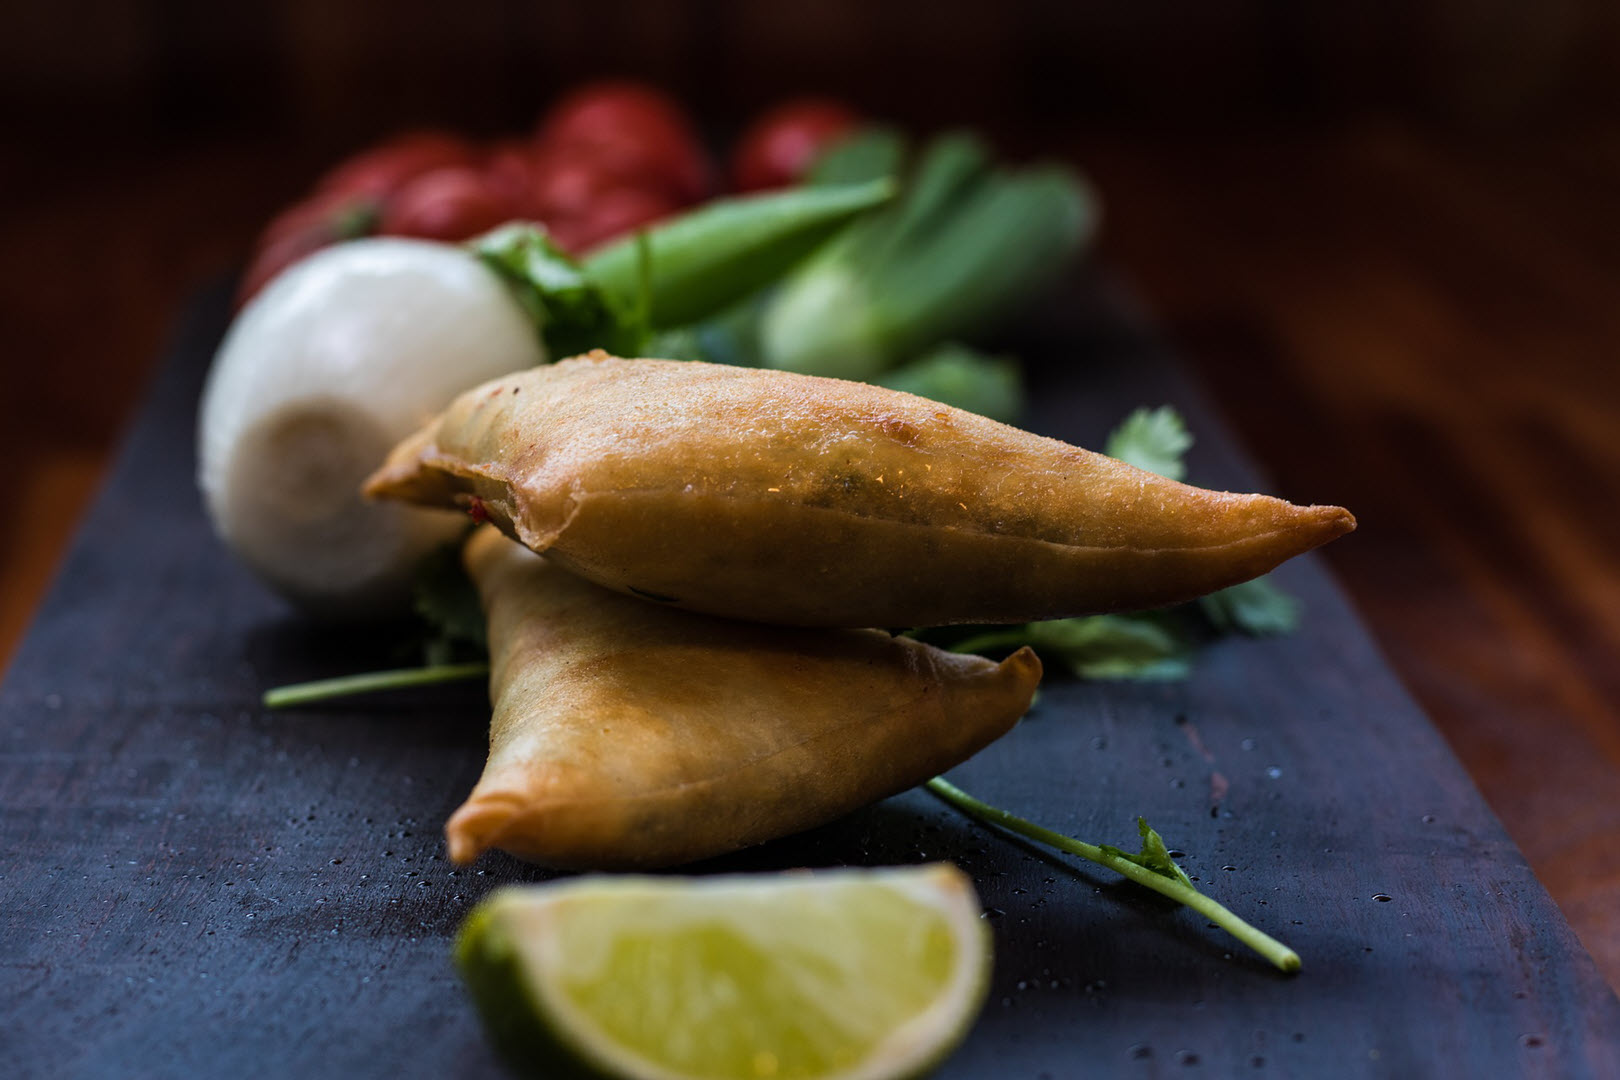 Indian samosas on a wooden serving board next to an onion and red pepper